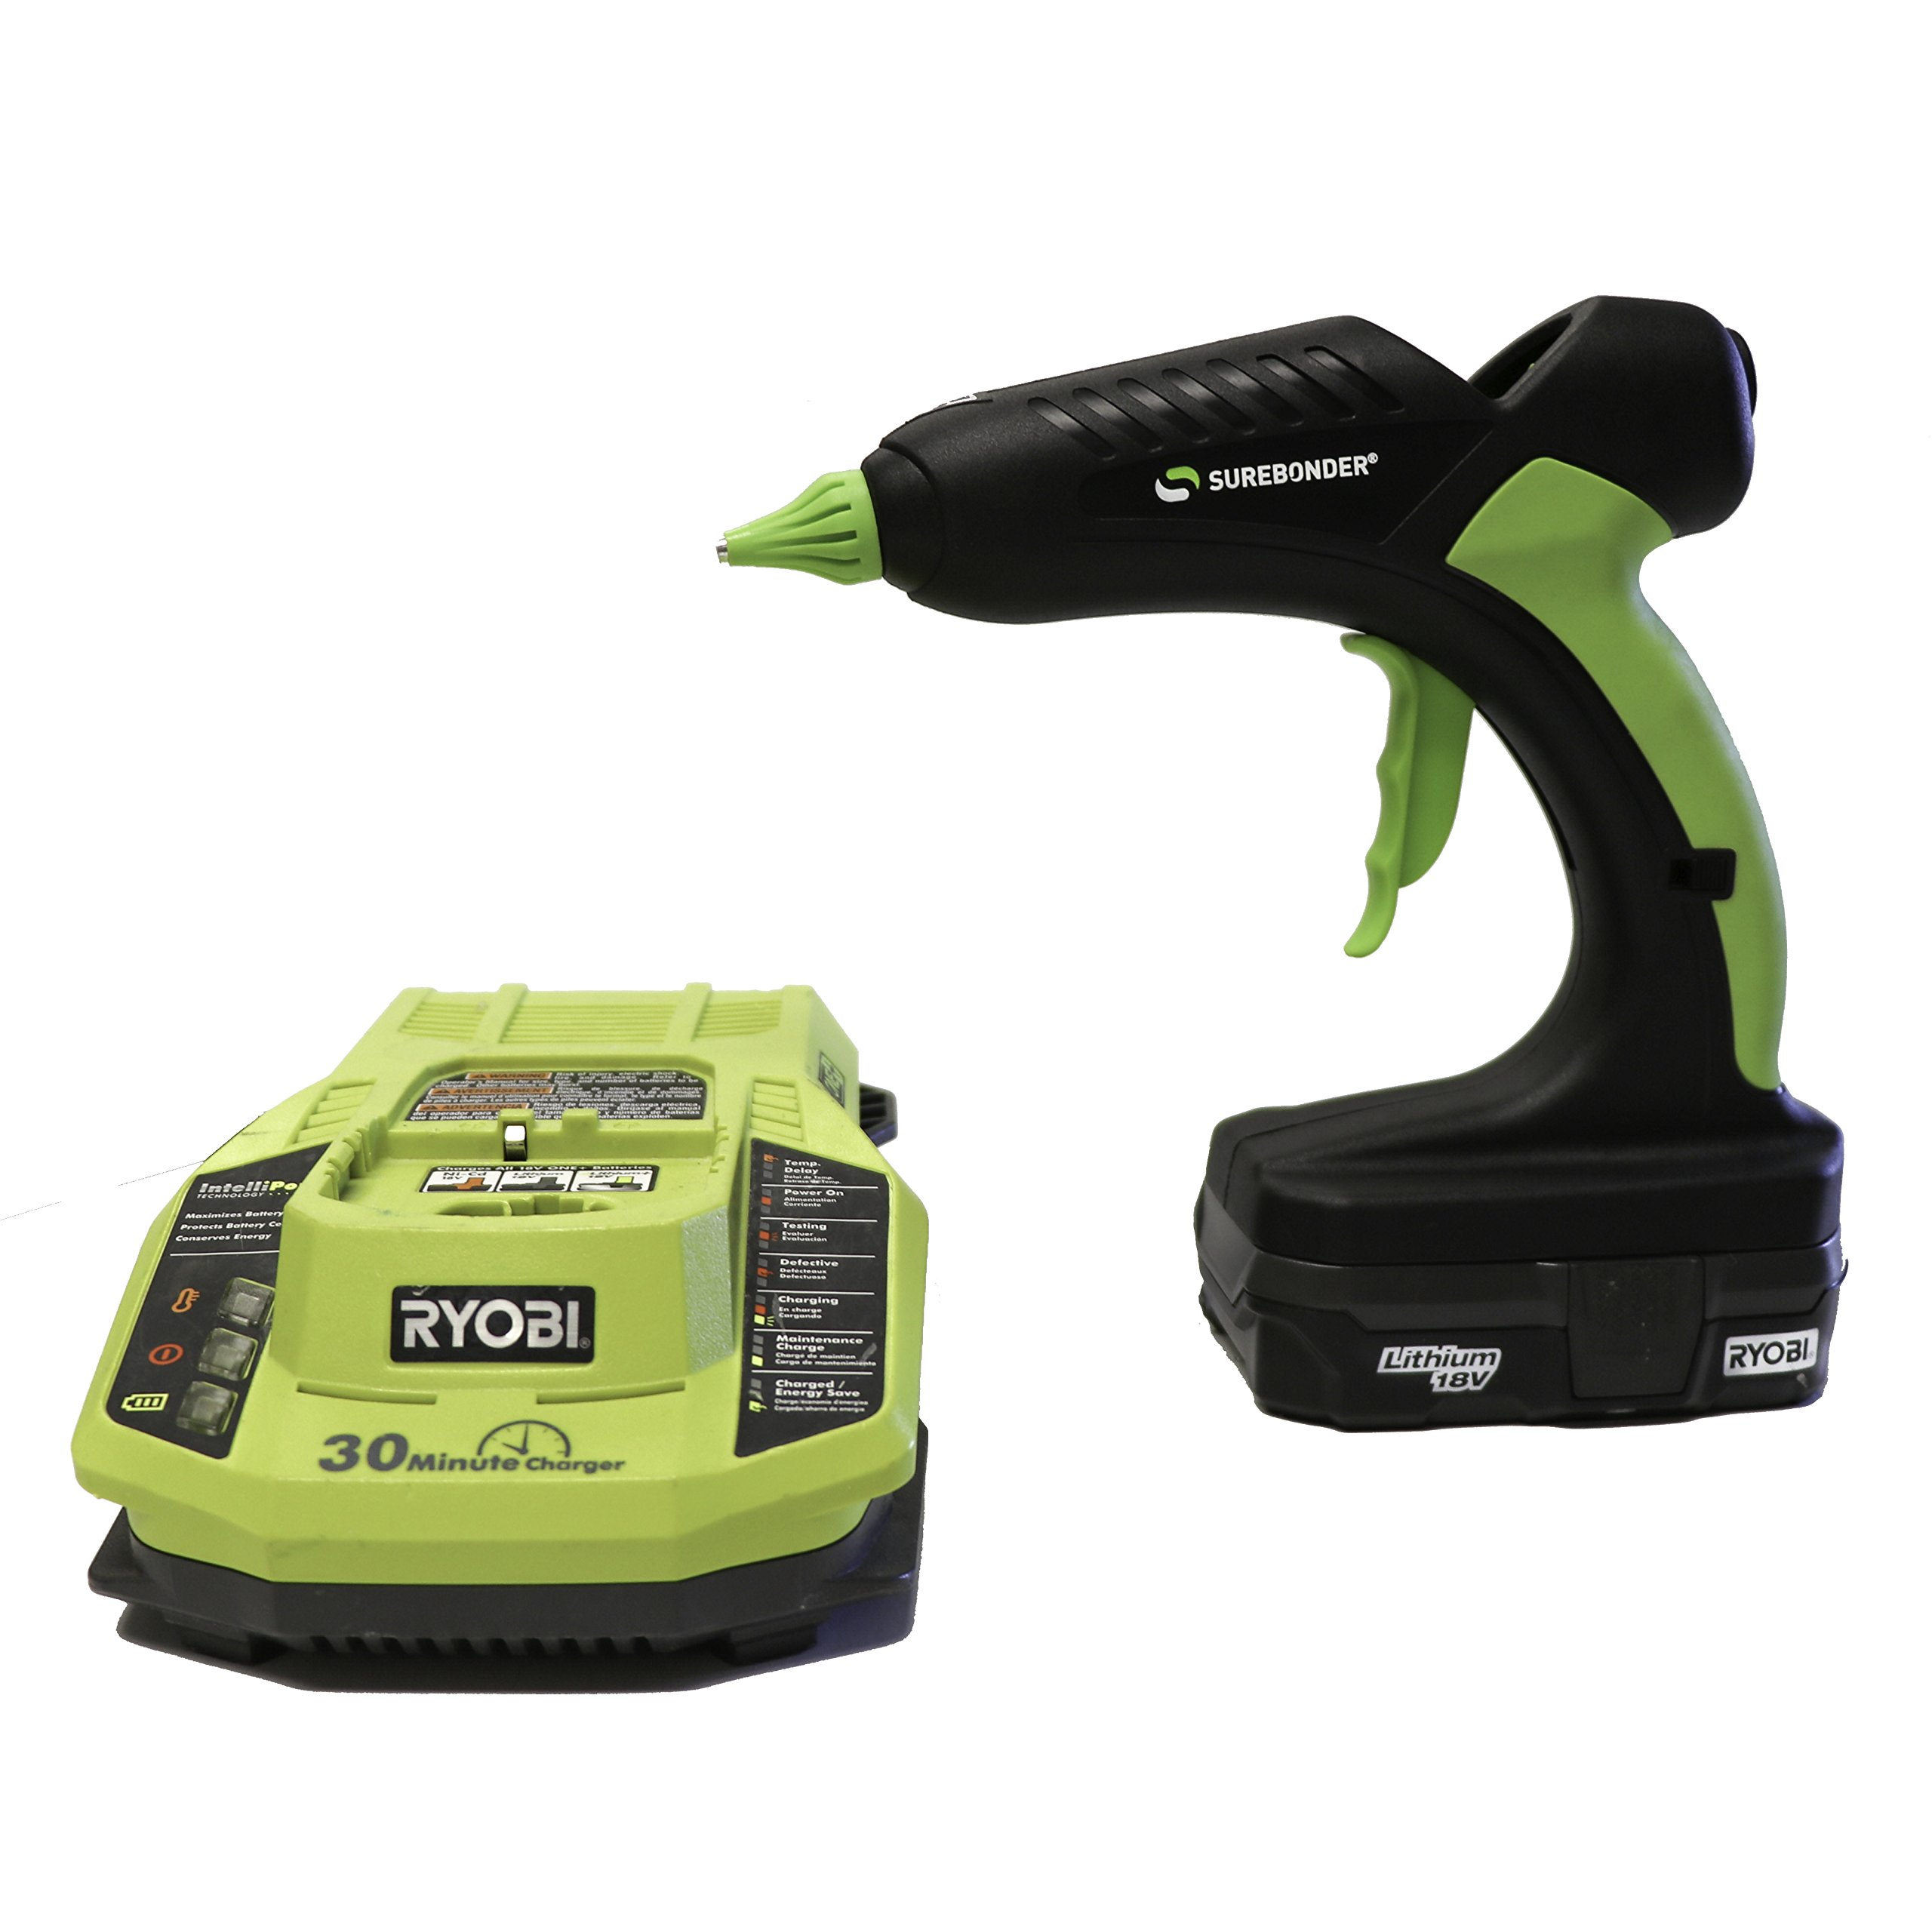 PRO2-60KIT 60 Watt Cordless Professional Heavy Duty Hot Glue Gun Kit-Full Size-Ryobi Battery & Charger Included